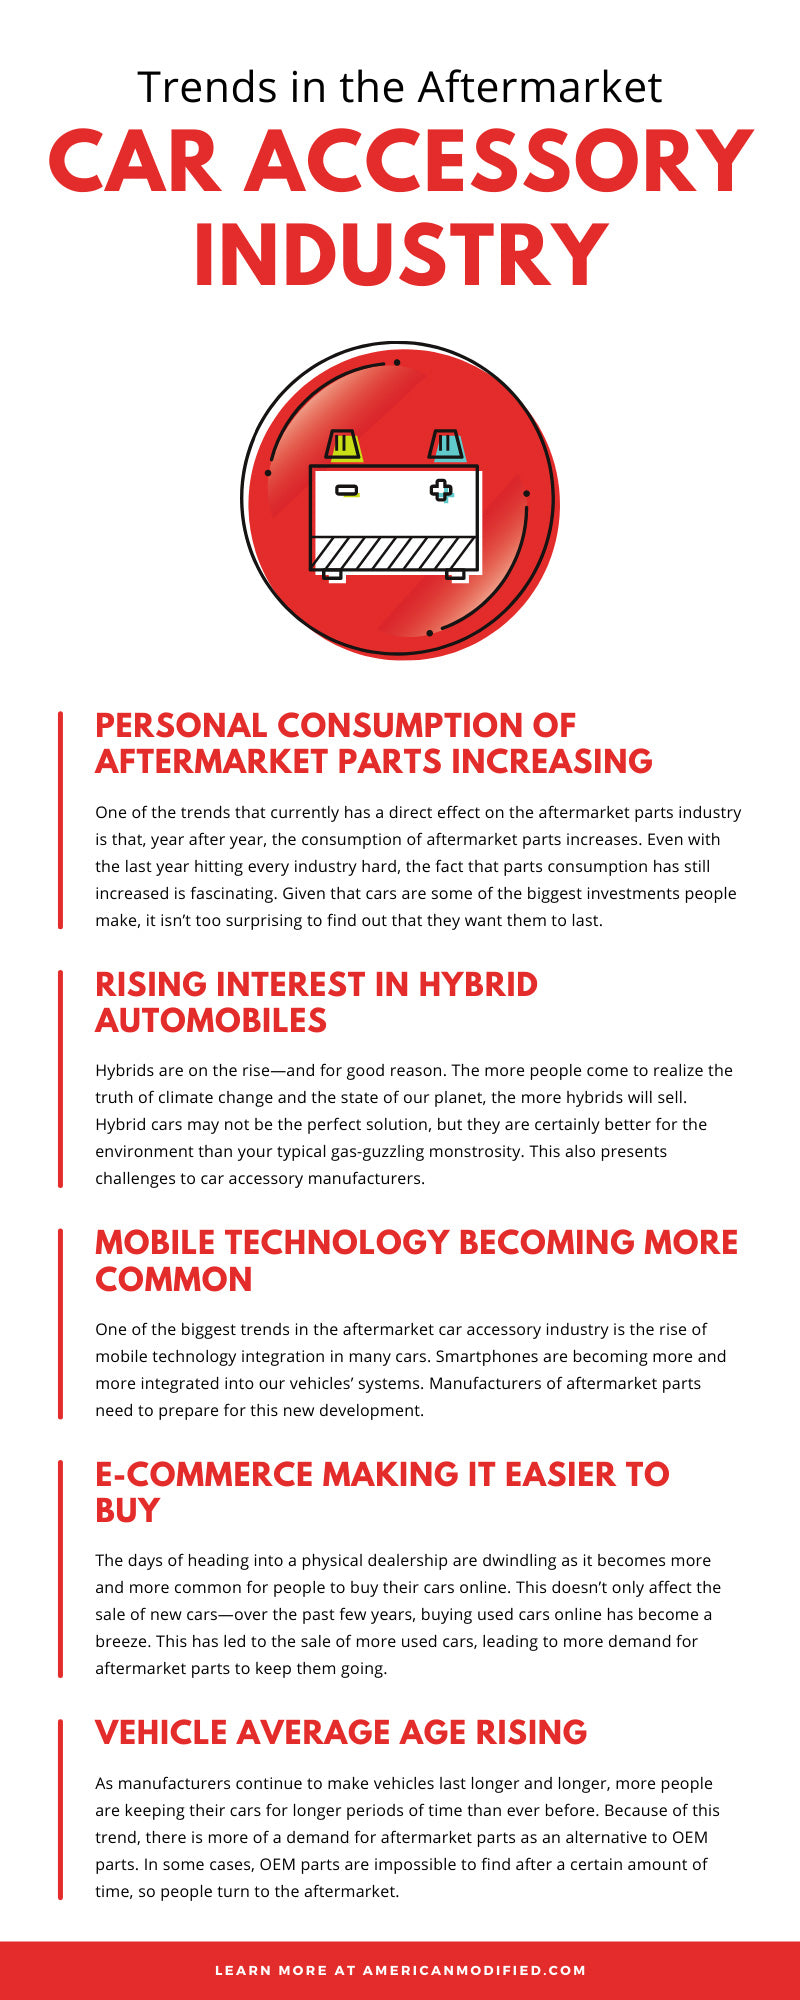 Trends in the Aftermarket Car Accessory Industry